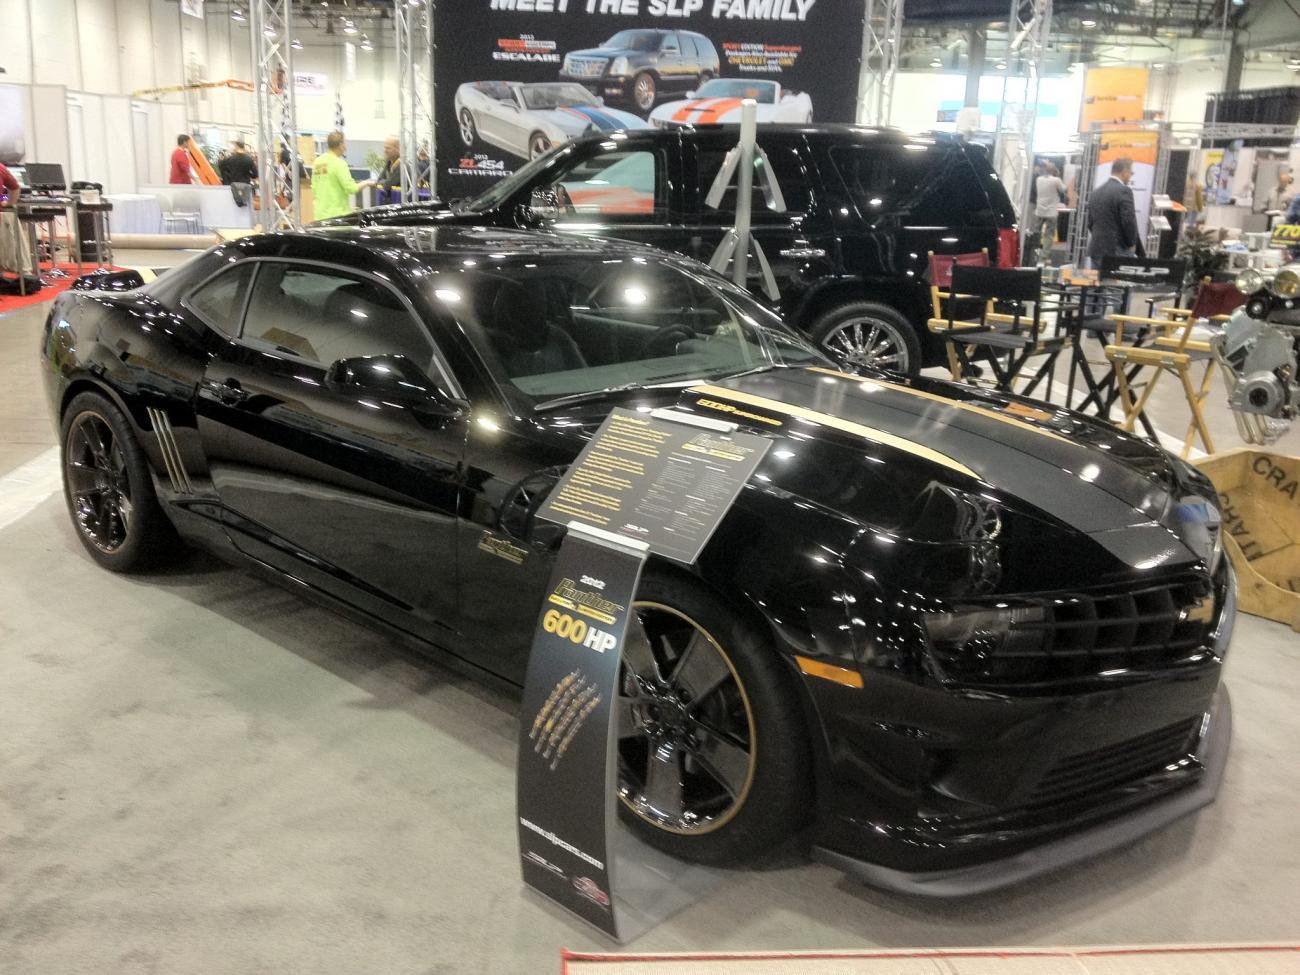 Slp Panther Camaro Limited Edition Announced 560 700hp